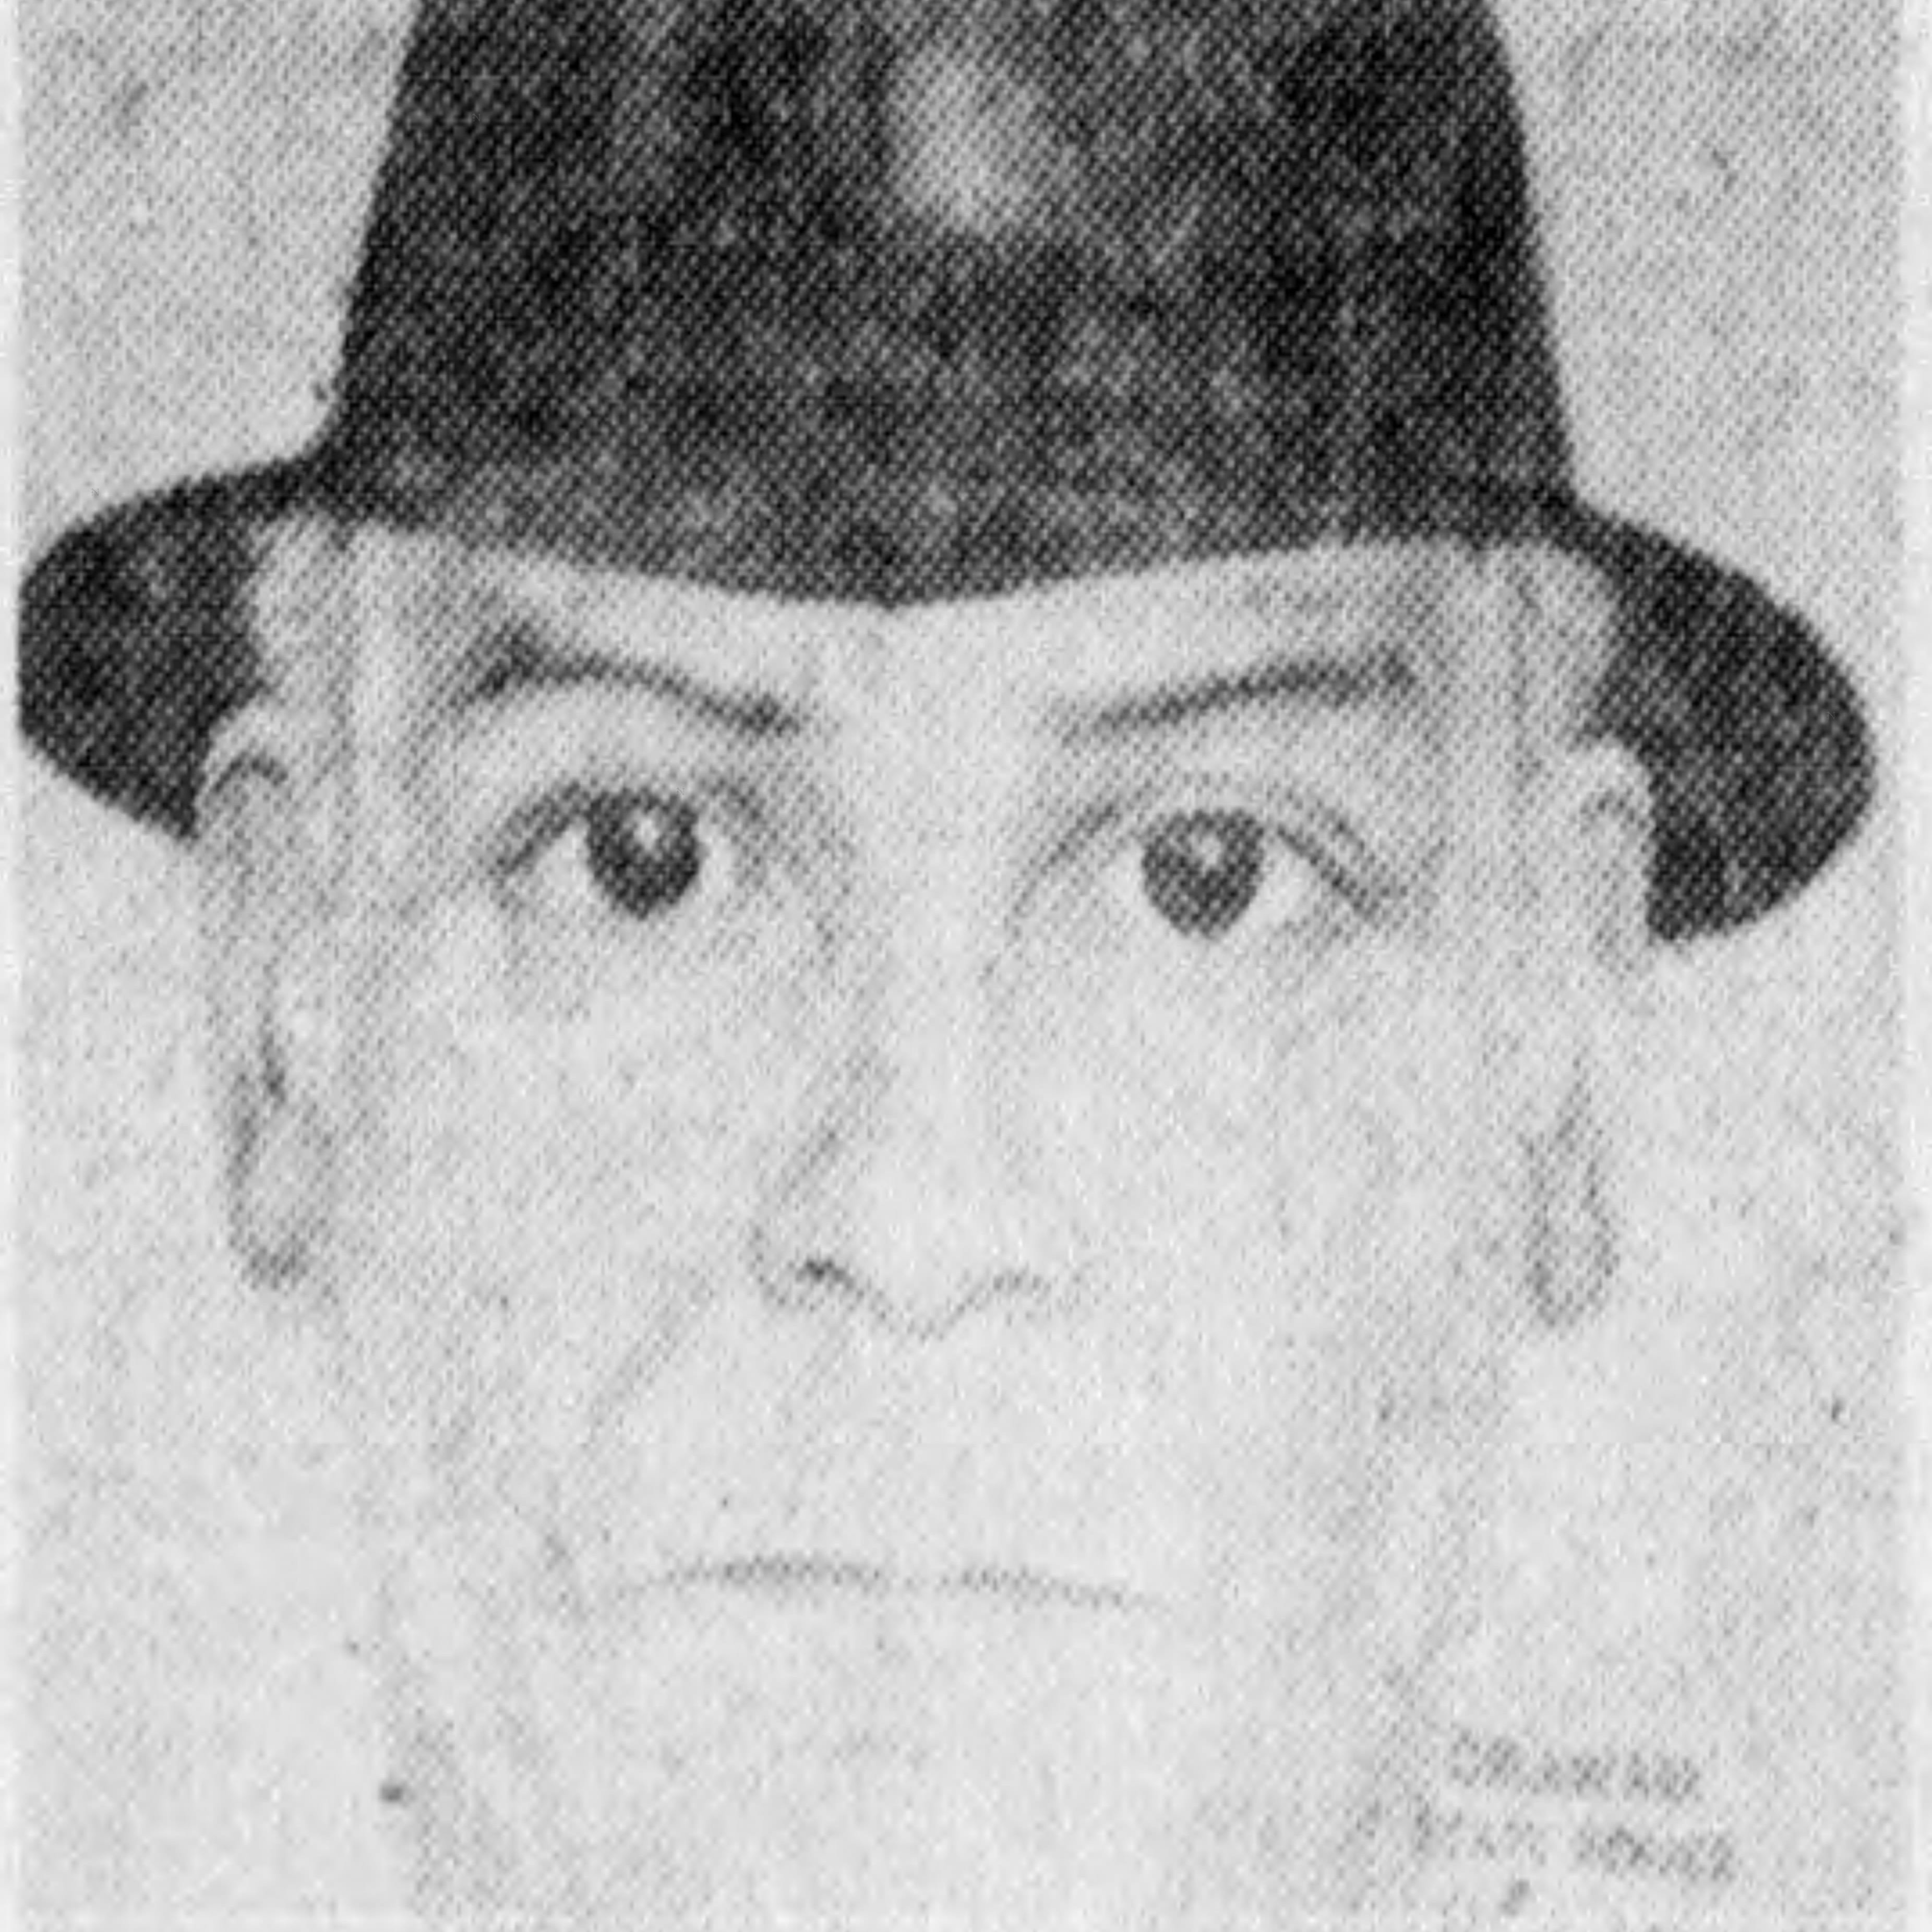 Delaware's Gentleman Bandit: One of the extraordinary cases in the state's history starts small